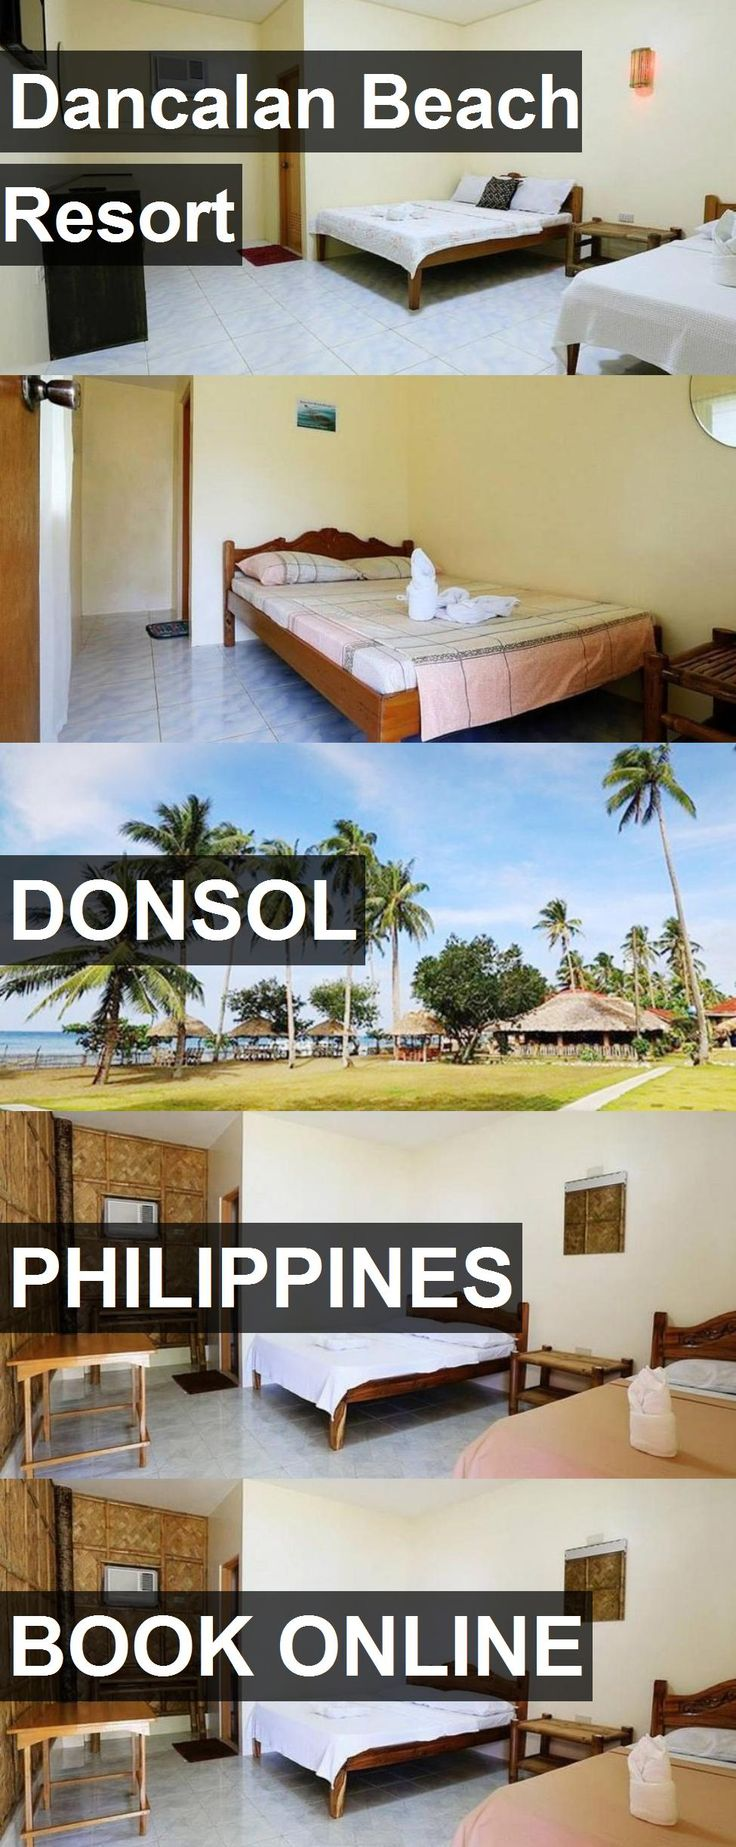 Hotel Dancalan Beach Resort in Donsol, Philippines. For more information, photos, reviews and best prices please follow the link. #Philippines #Donsol #travel #vacation #hotel